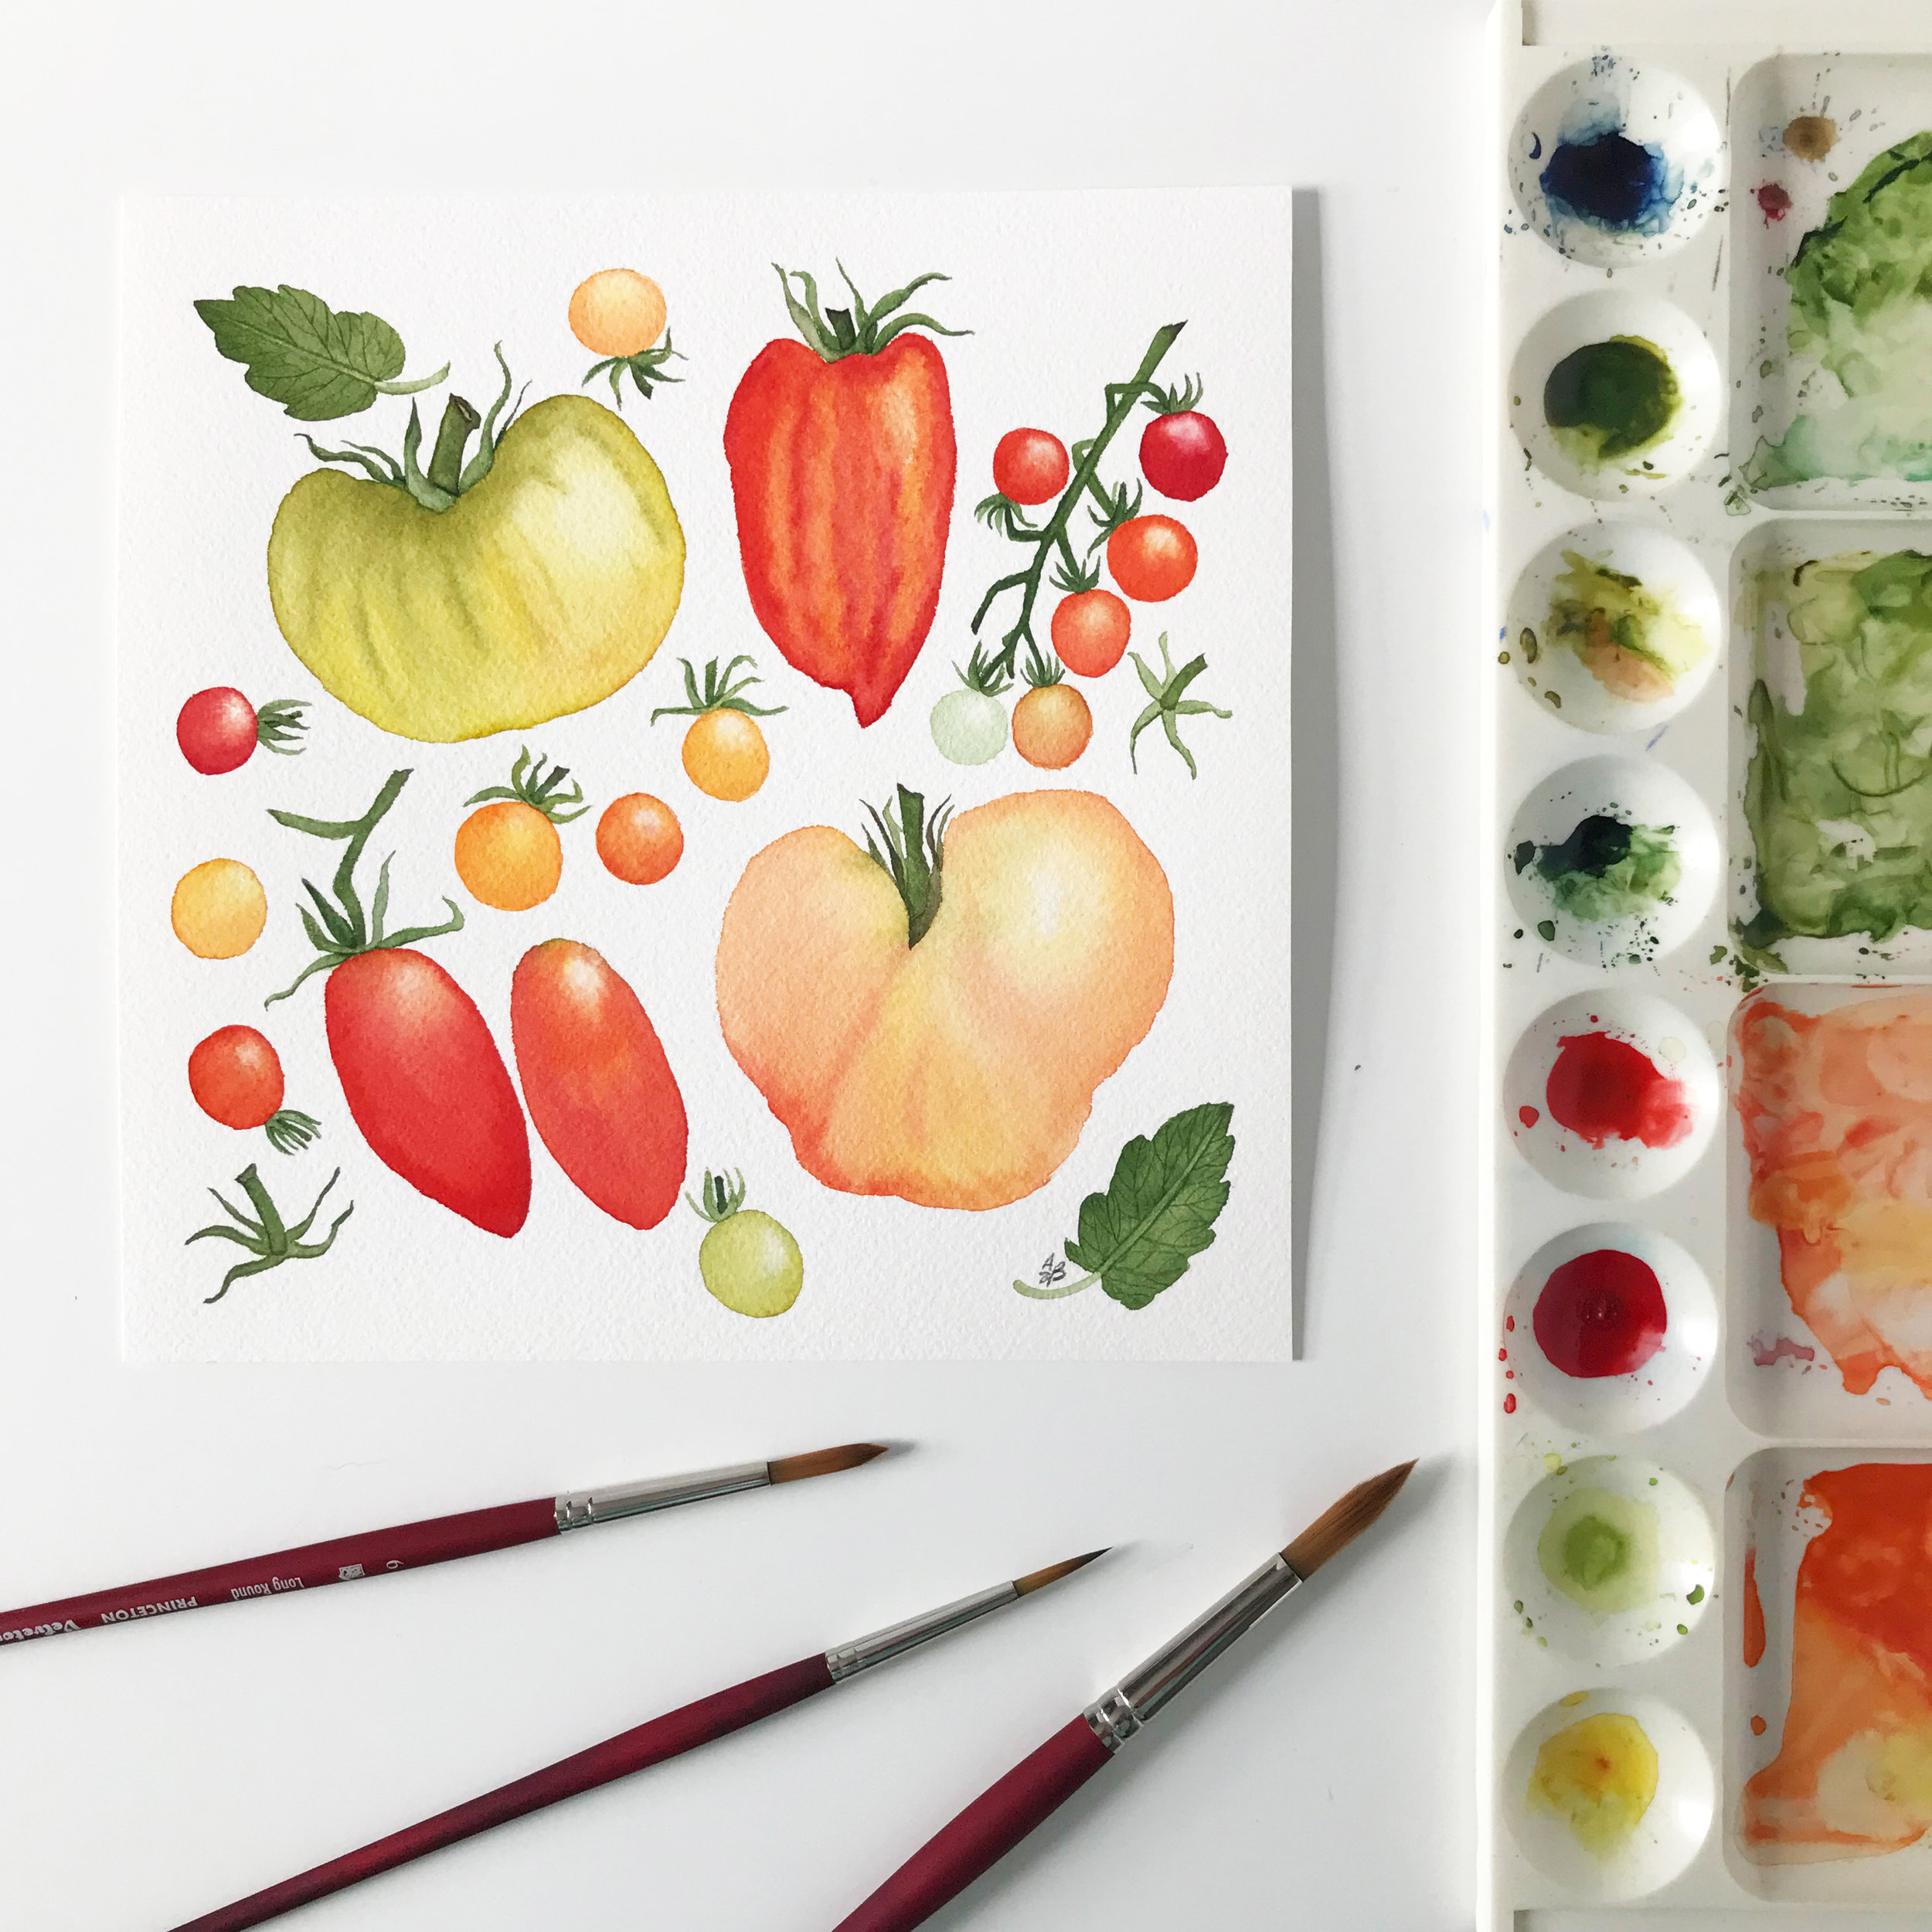 Heirloom Tomatoes Watercolor Painting by Anne Butera